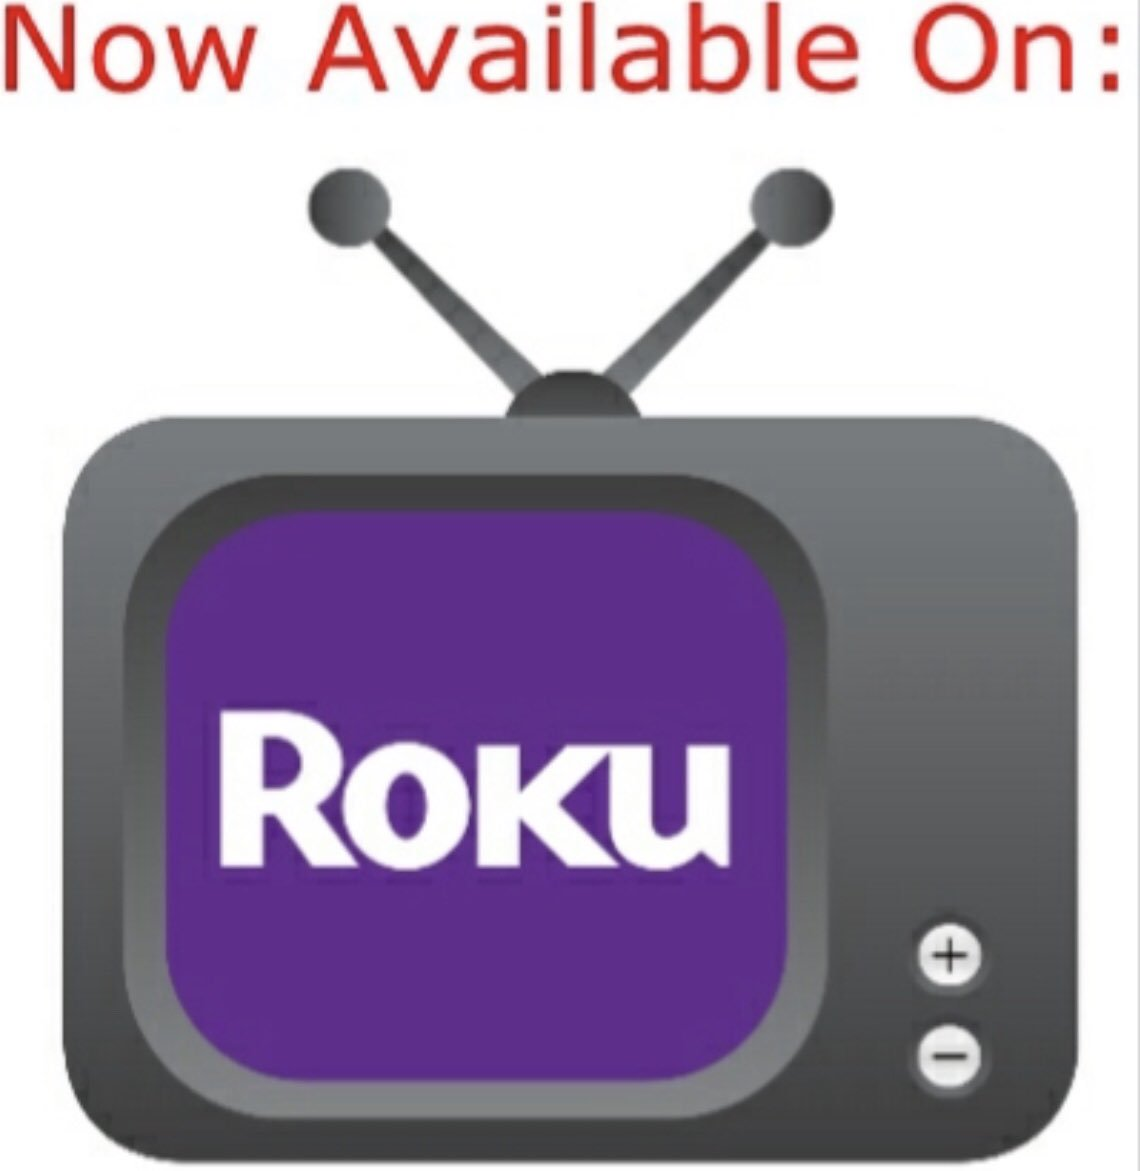 #DM us today and ask us how you can get your #TvShow #commercial #musicvideo #vlog #radioshow AIRED on @rokuplayer TV for 30days, 1 hour a day for as low as $100/month.<br>http://pic.twitter.com/0SyDM2f4cs